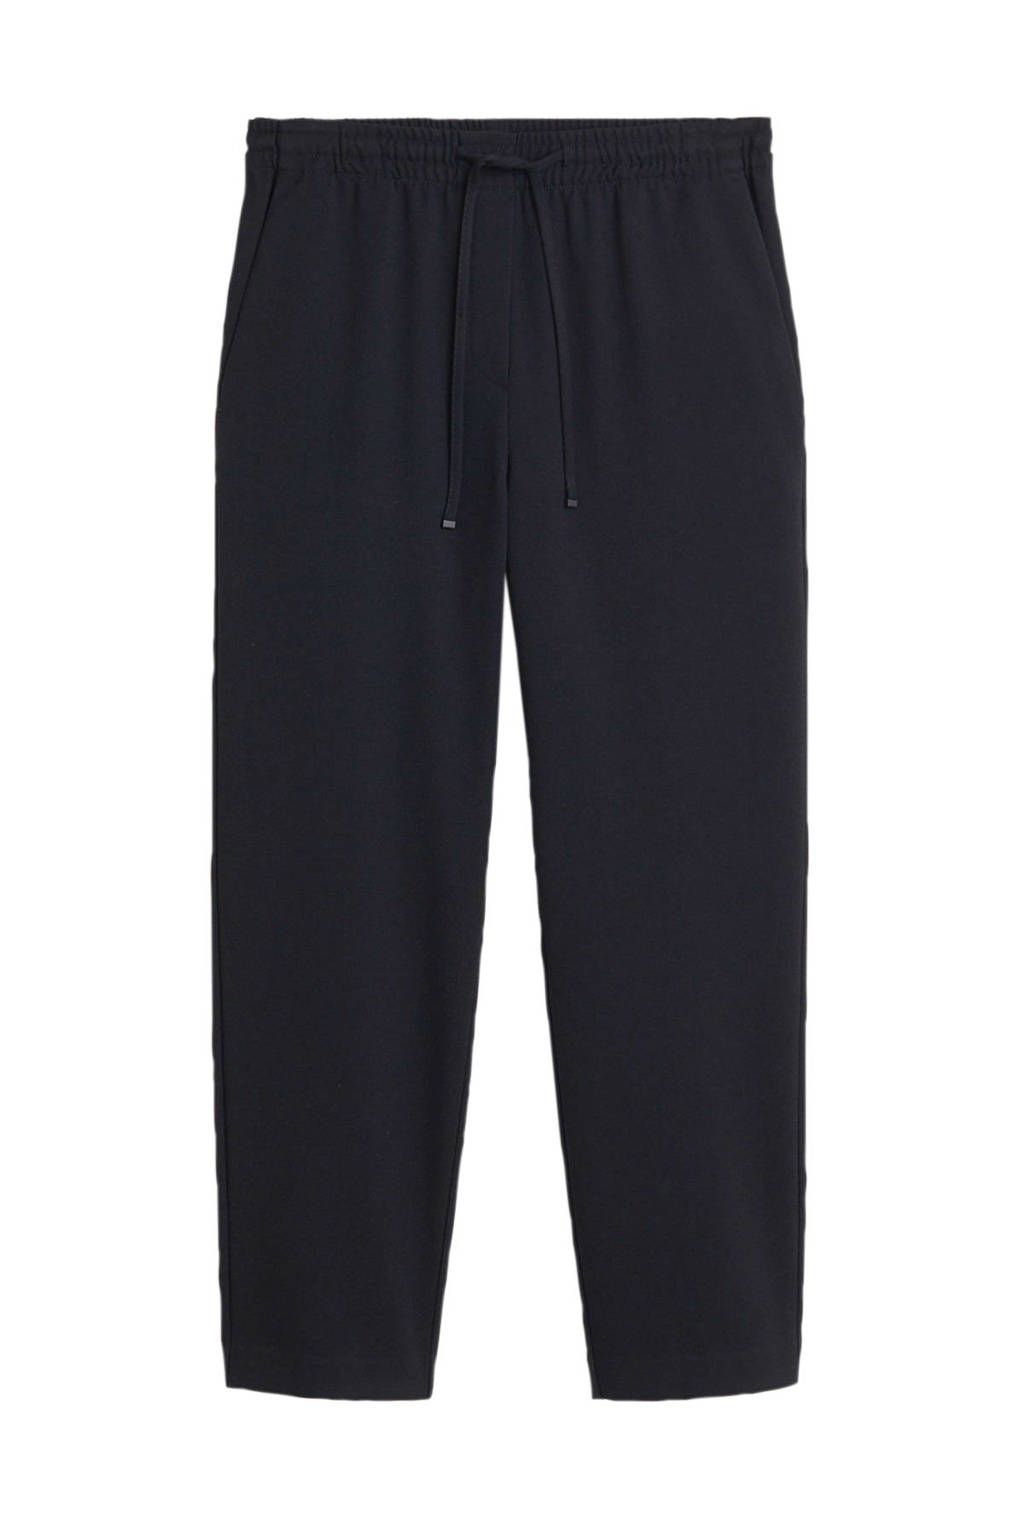 Mango high waist straight fit pantalon zwart, Zwart